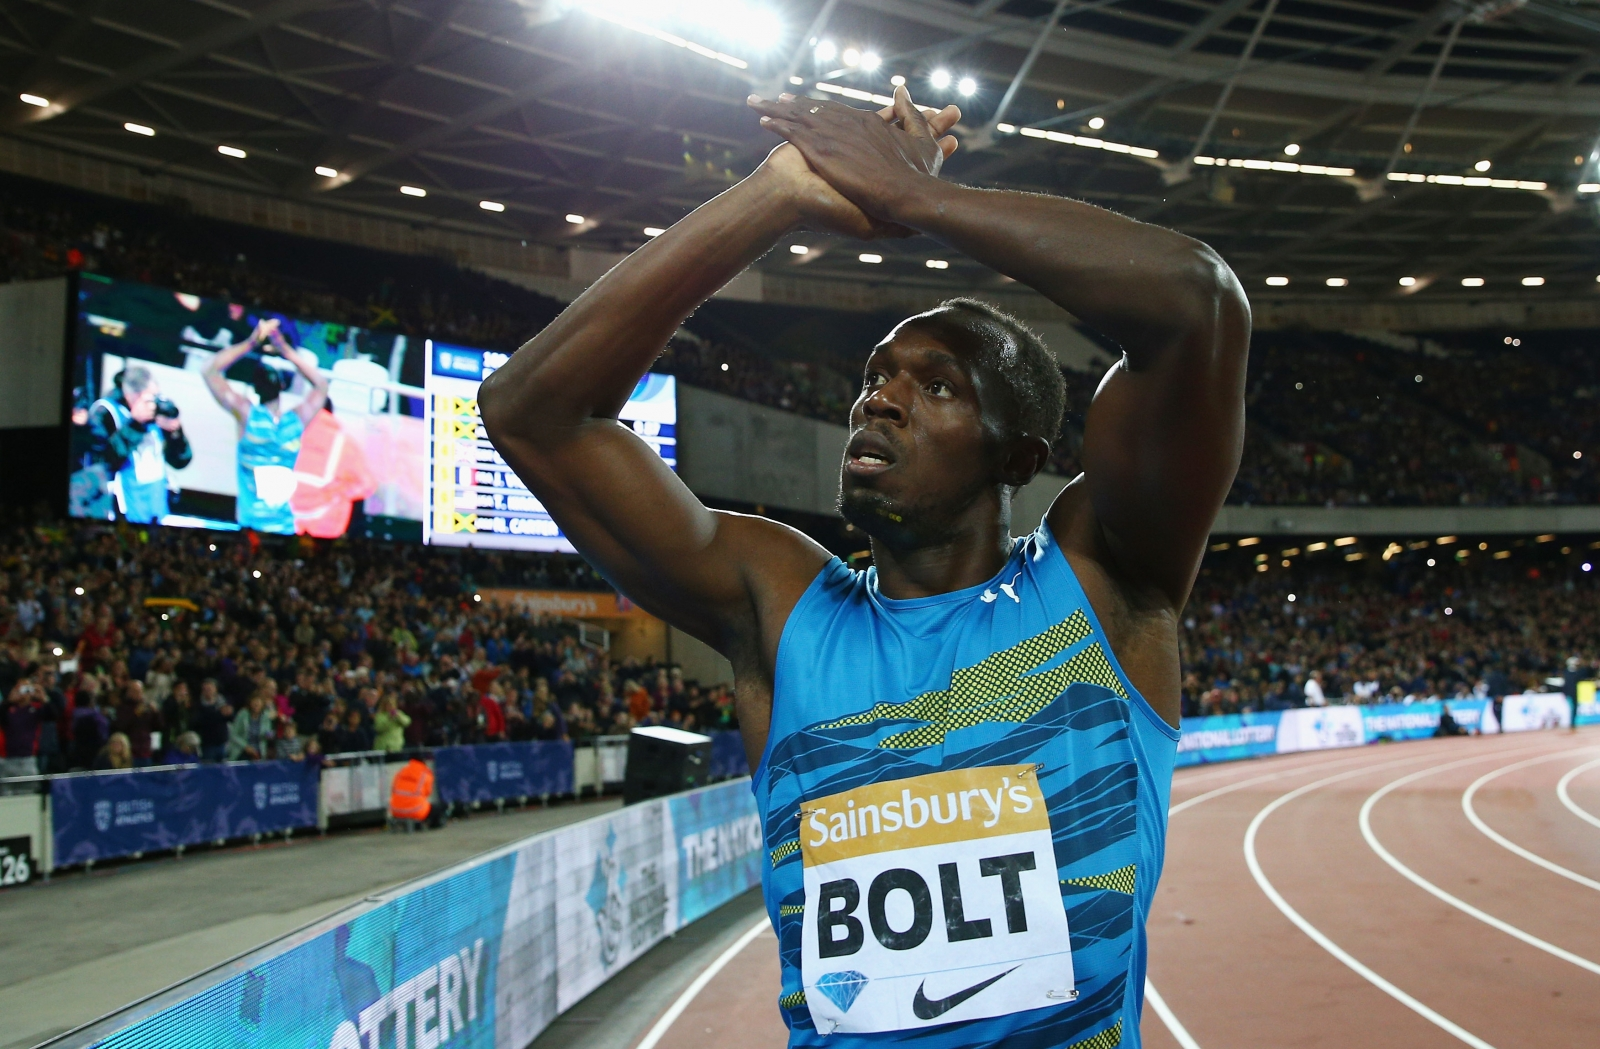 Usain Bolt: Know his workout, diet plan and likes